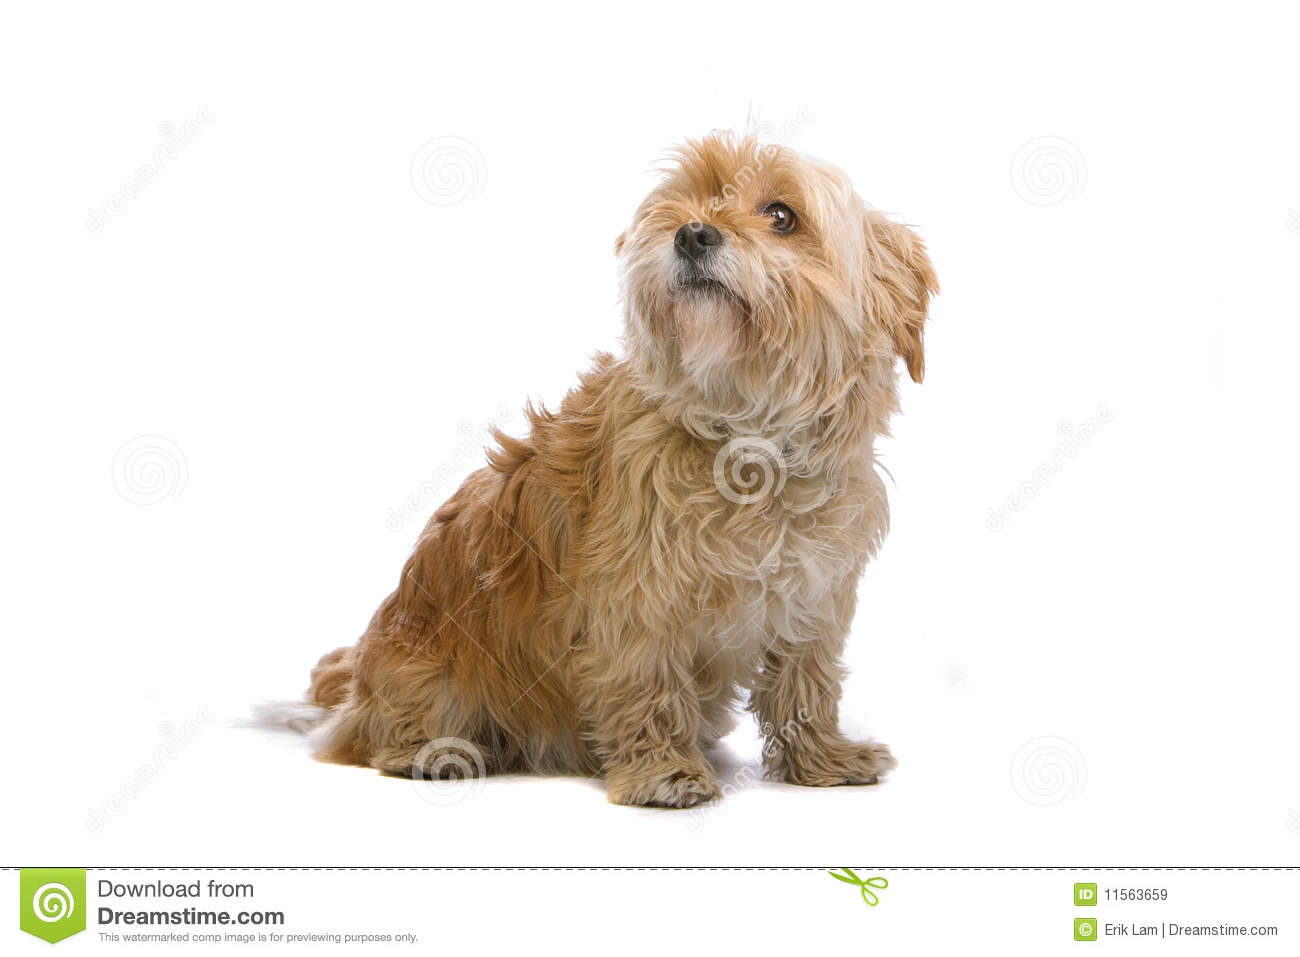 Hairy Dog Breed Name